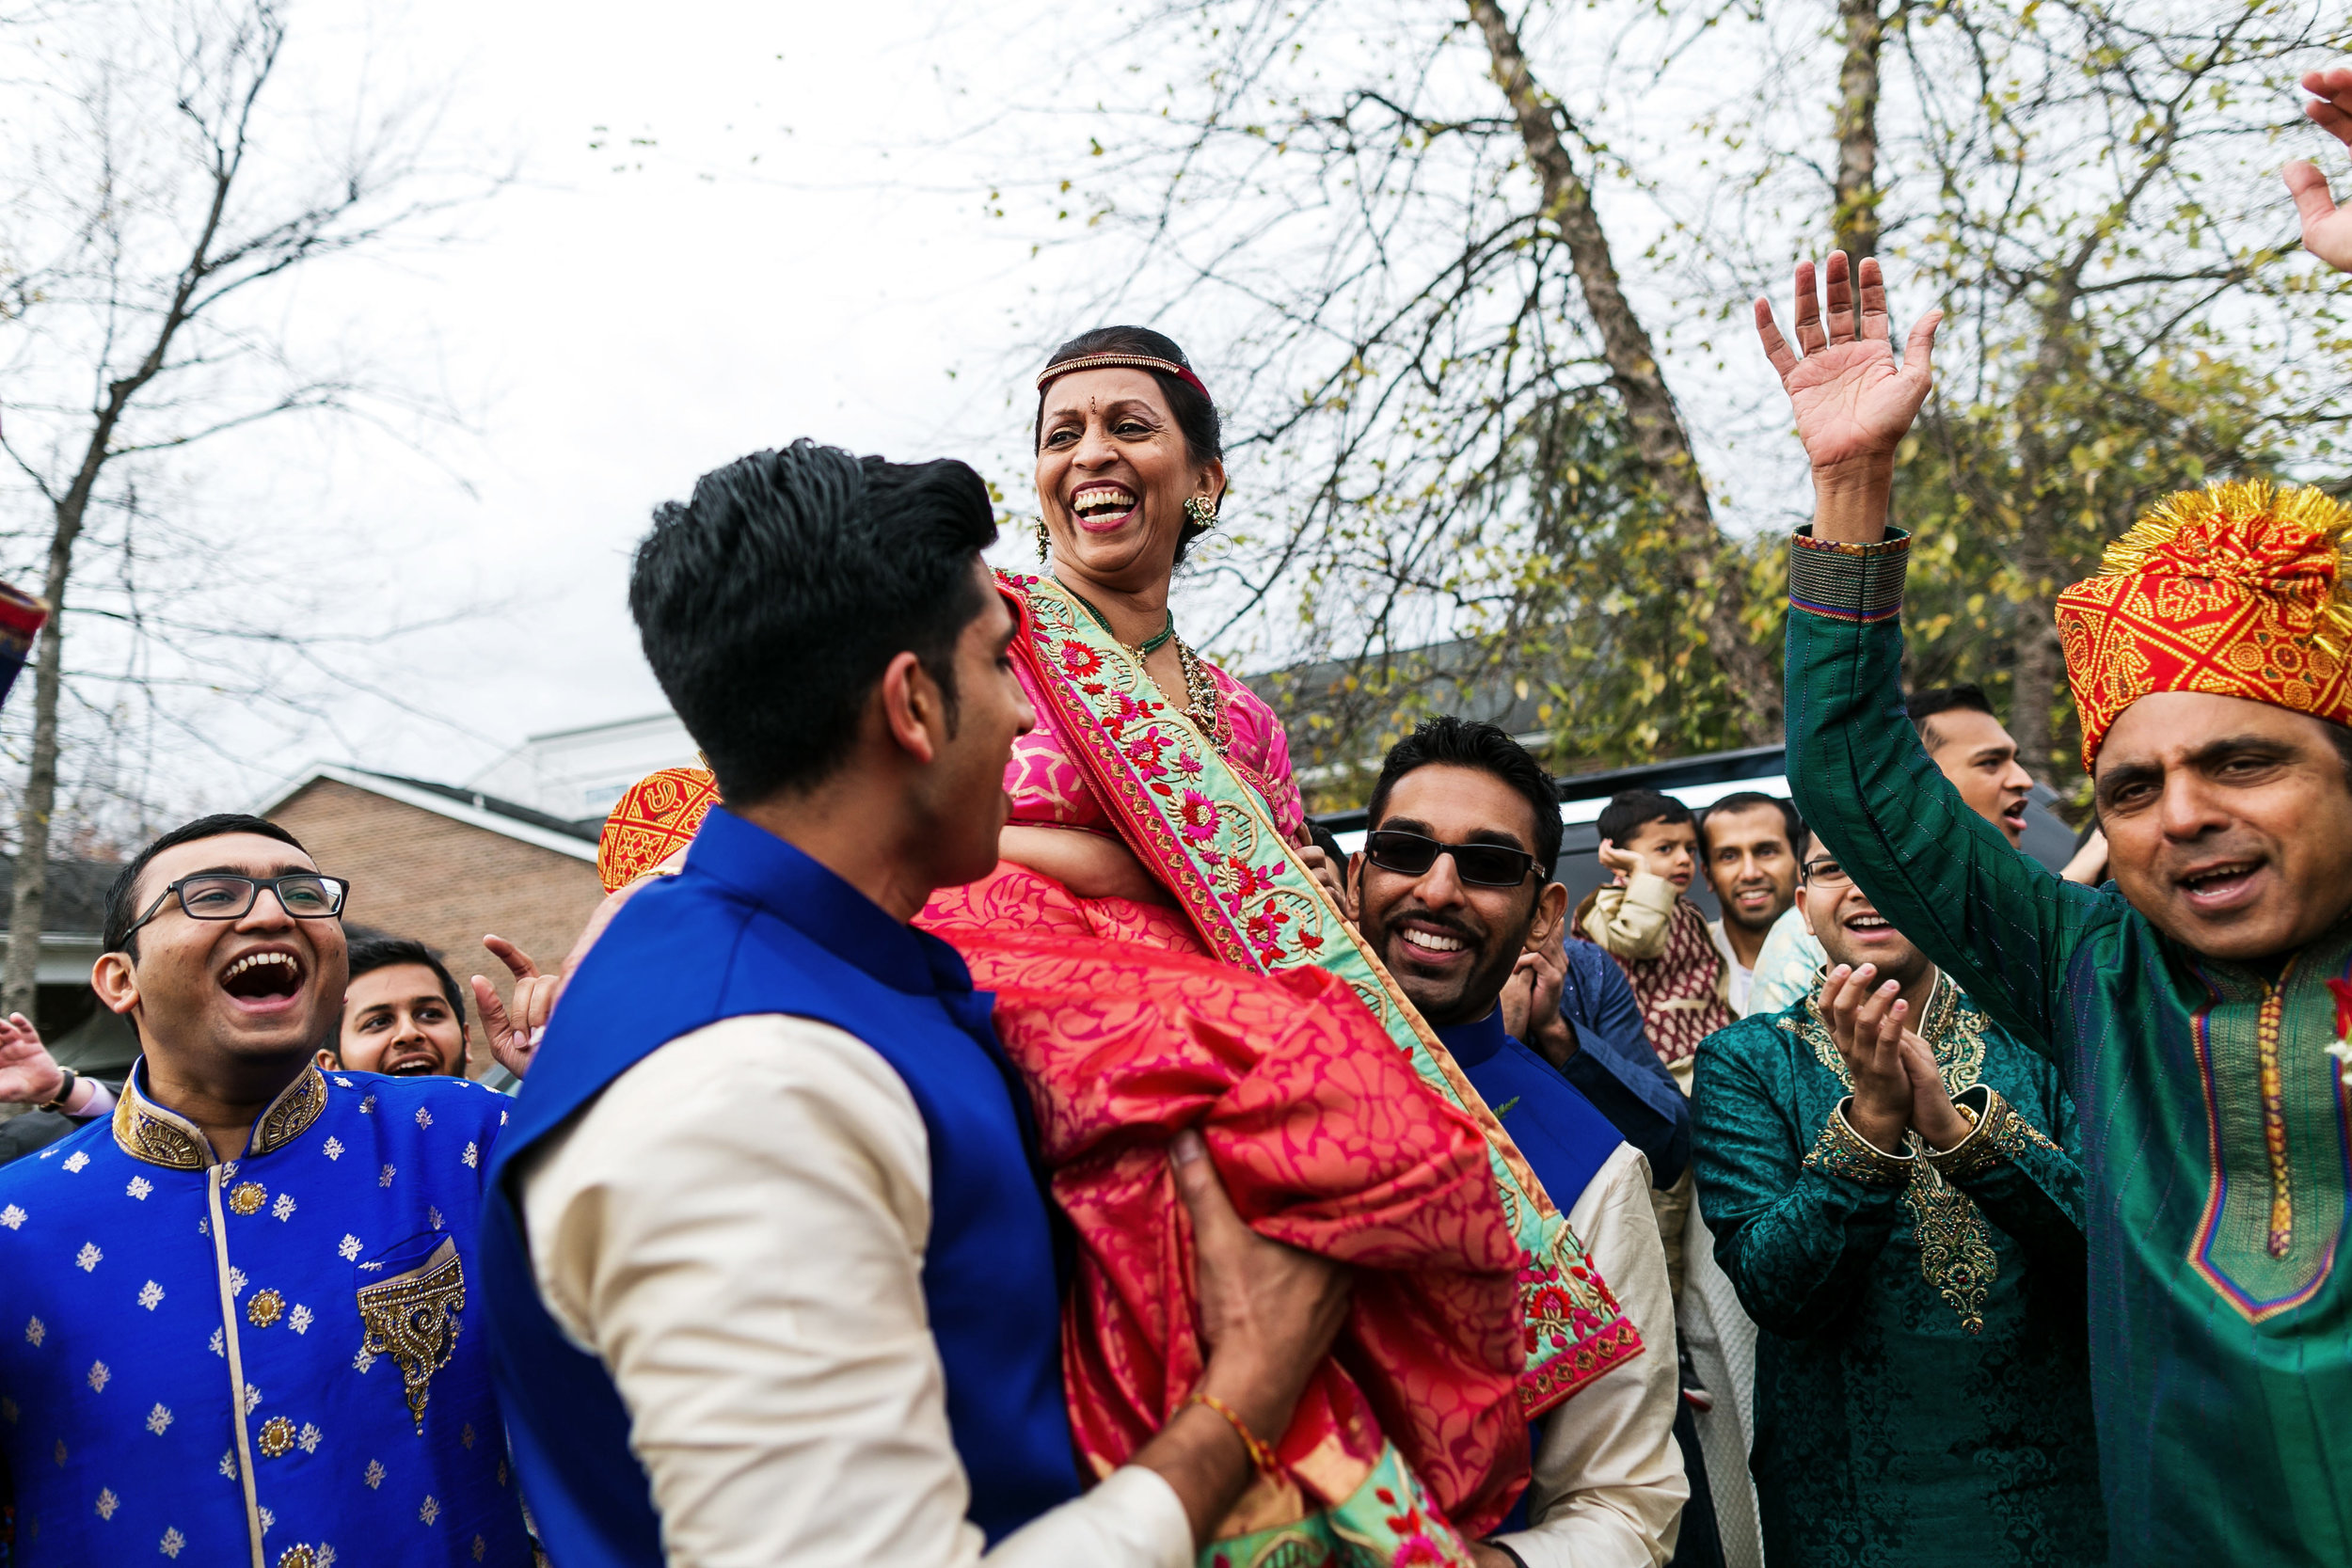 DANCING AT BARAAT.JPG